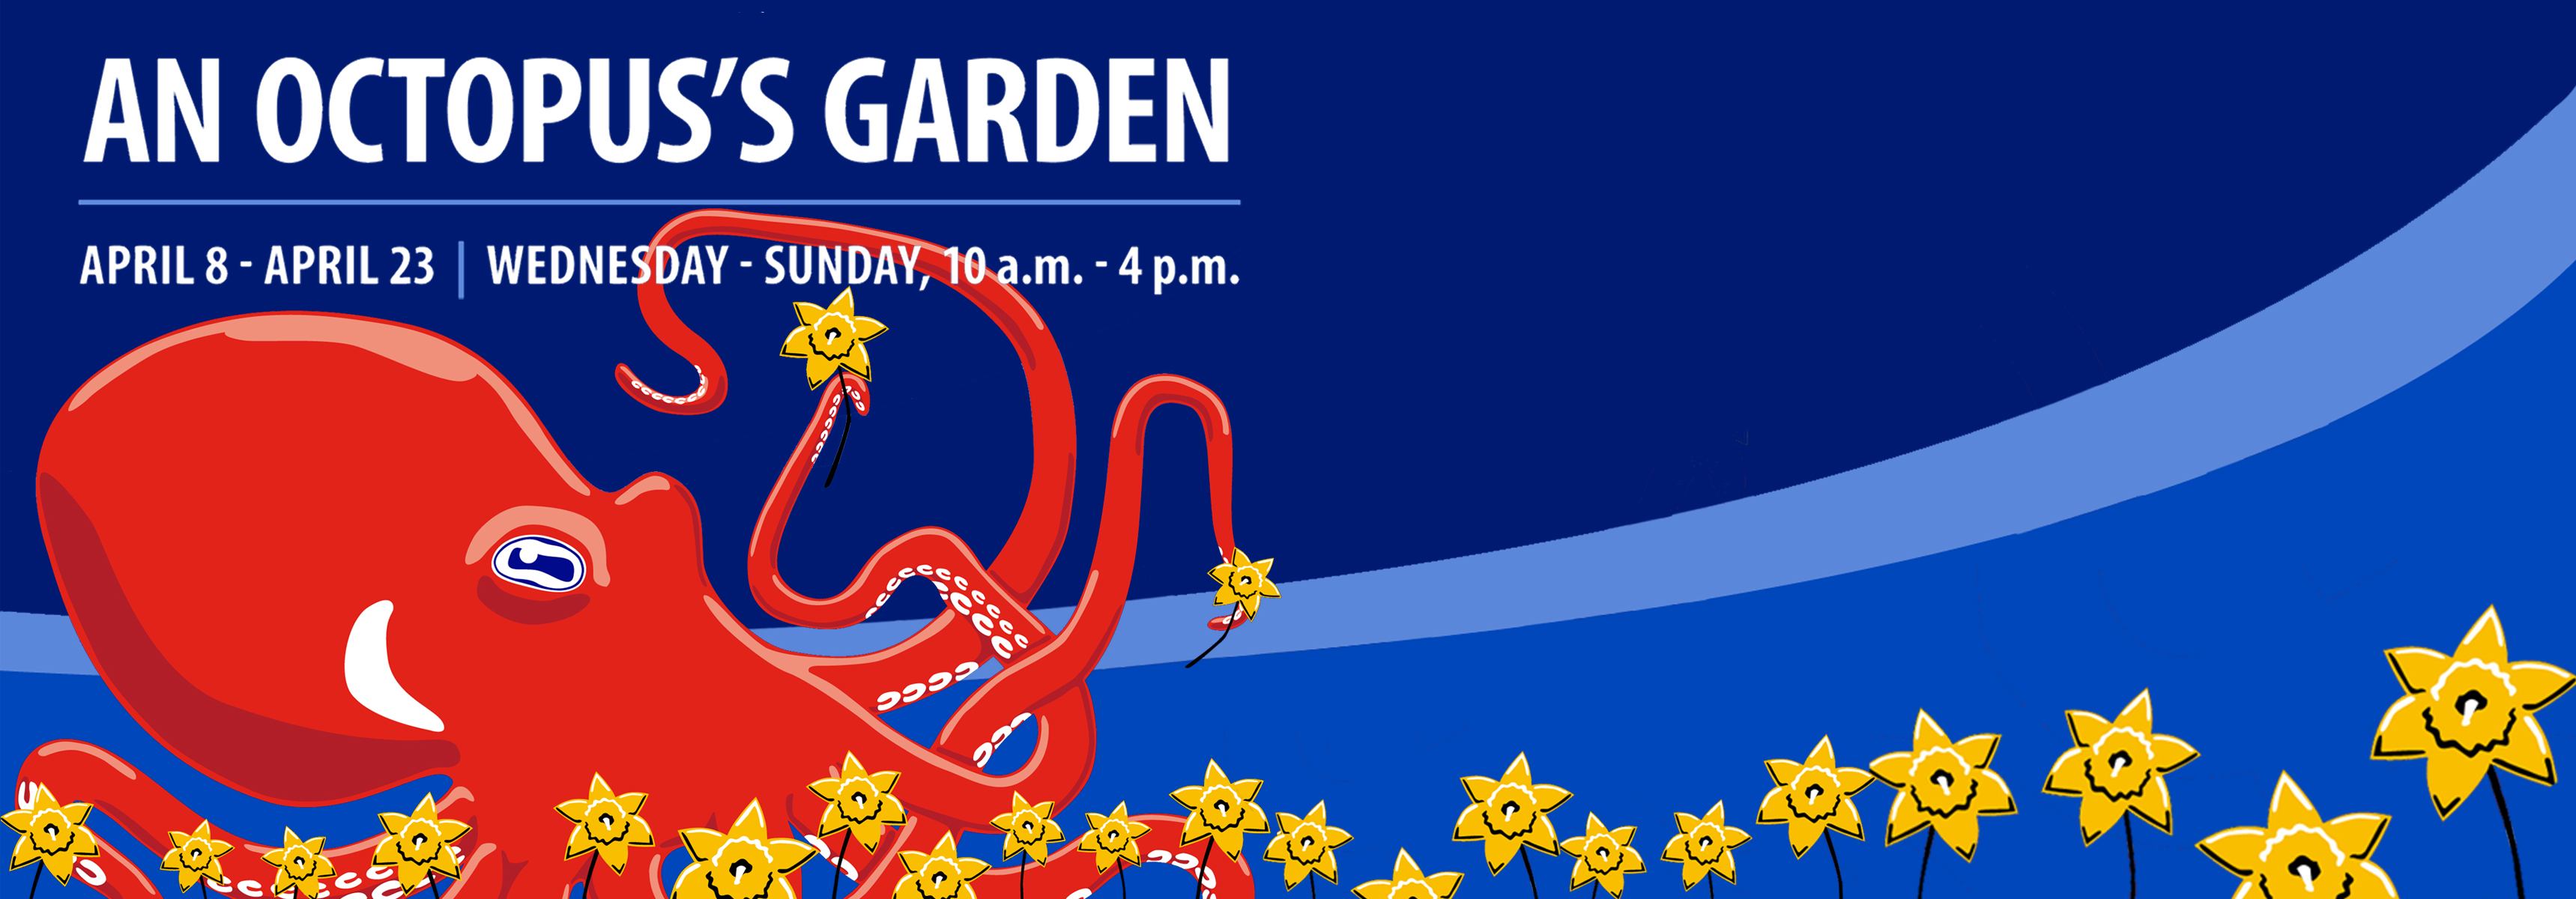 octopuss-garden-web-template-slider-copy Volunteer Spring Newsletter Template on volunteer graphics, pto flyer templates, volunteer name tags, volunteer clipart, volunteer of the month template, application templates, food drive templates, women's history month templates, wish list templates, volunteer training, volunteer quotes, annual report templates, volunteer banners, volunteer projects, volunteer logs, volunteer themes, sign up templates,